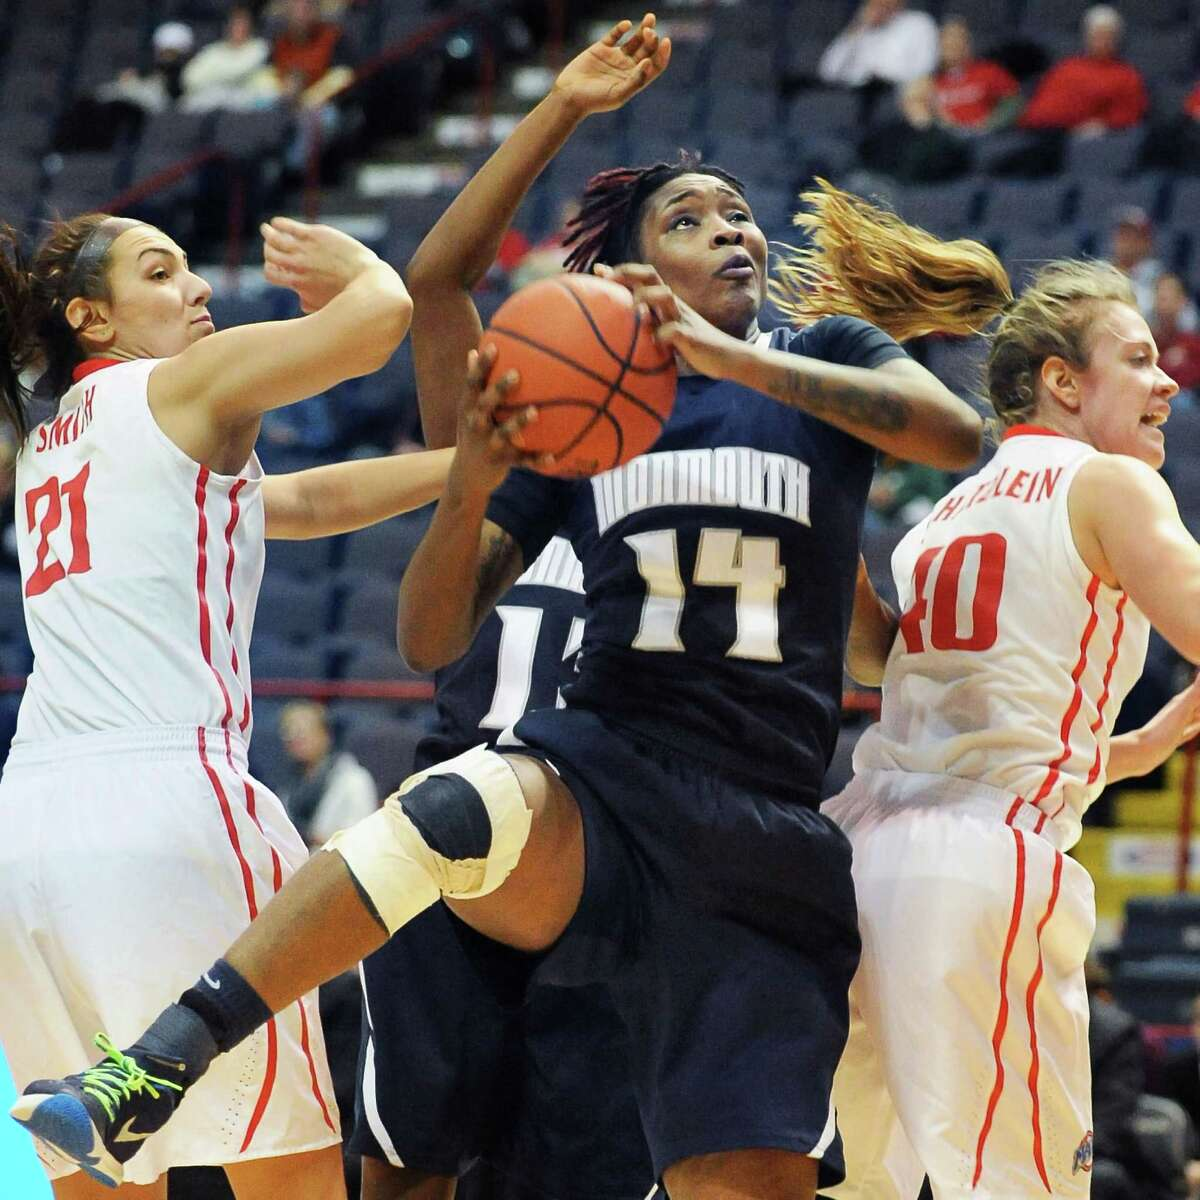 Monmouth's # 14 Christina Mitchel beats out Fairfield's #21 Casey Smith , left, and #40 Kristin Schatzlein, right, to a rebound during their MAAC women's quarterfinal at the Times Union Center Saturday March 5, 2016 in Albany, NY. (John Carl D'Annibale / Times Union)